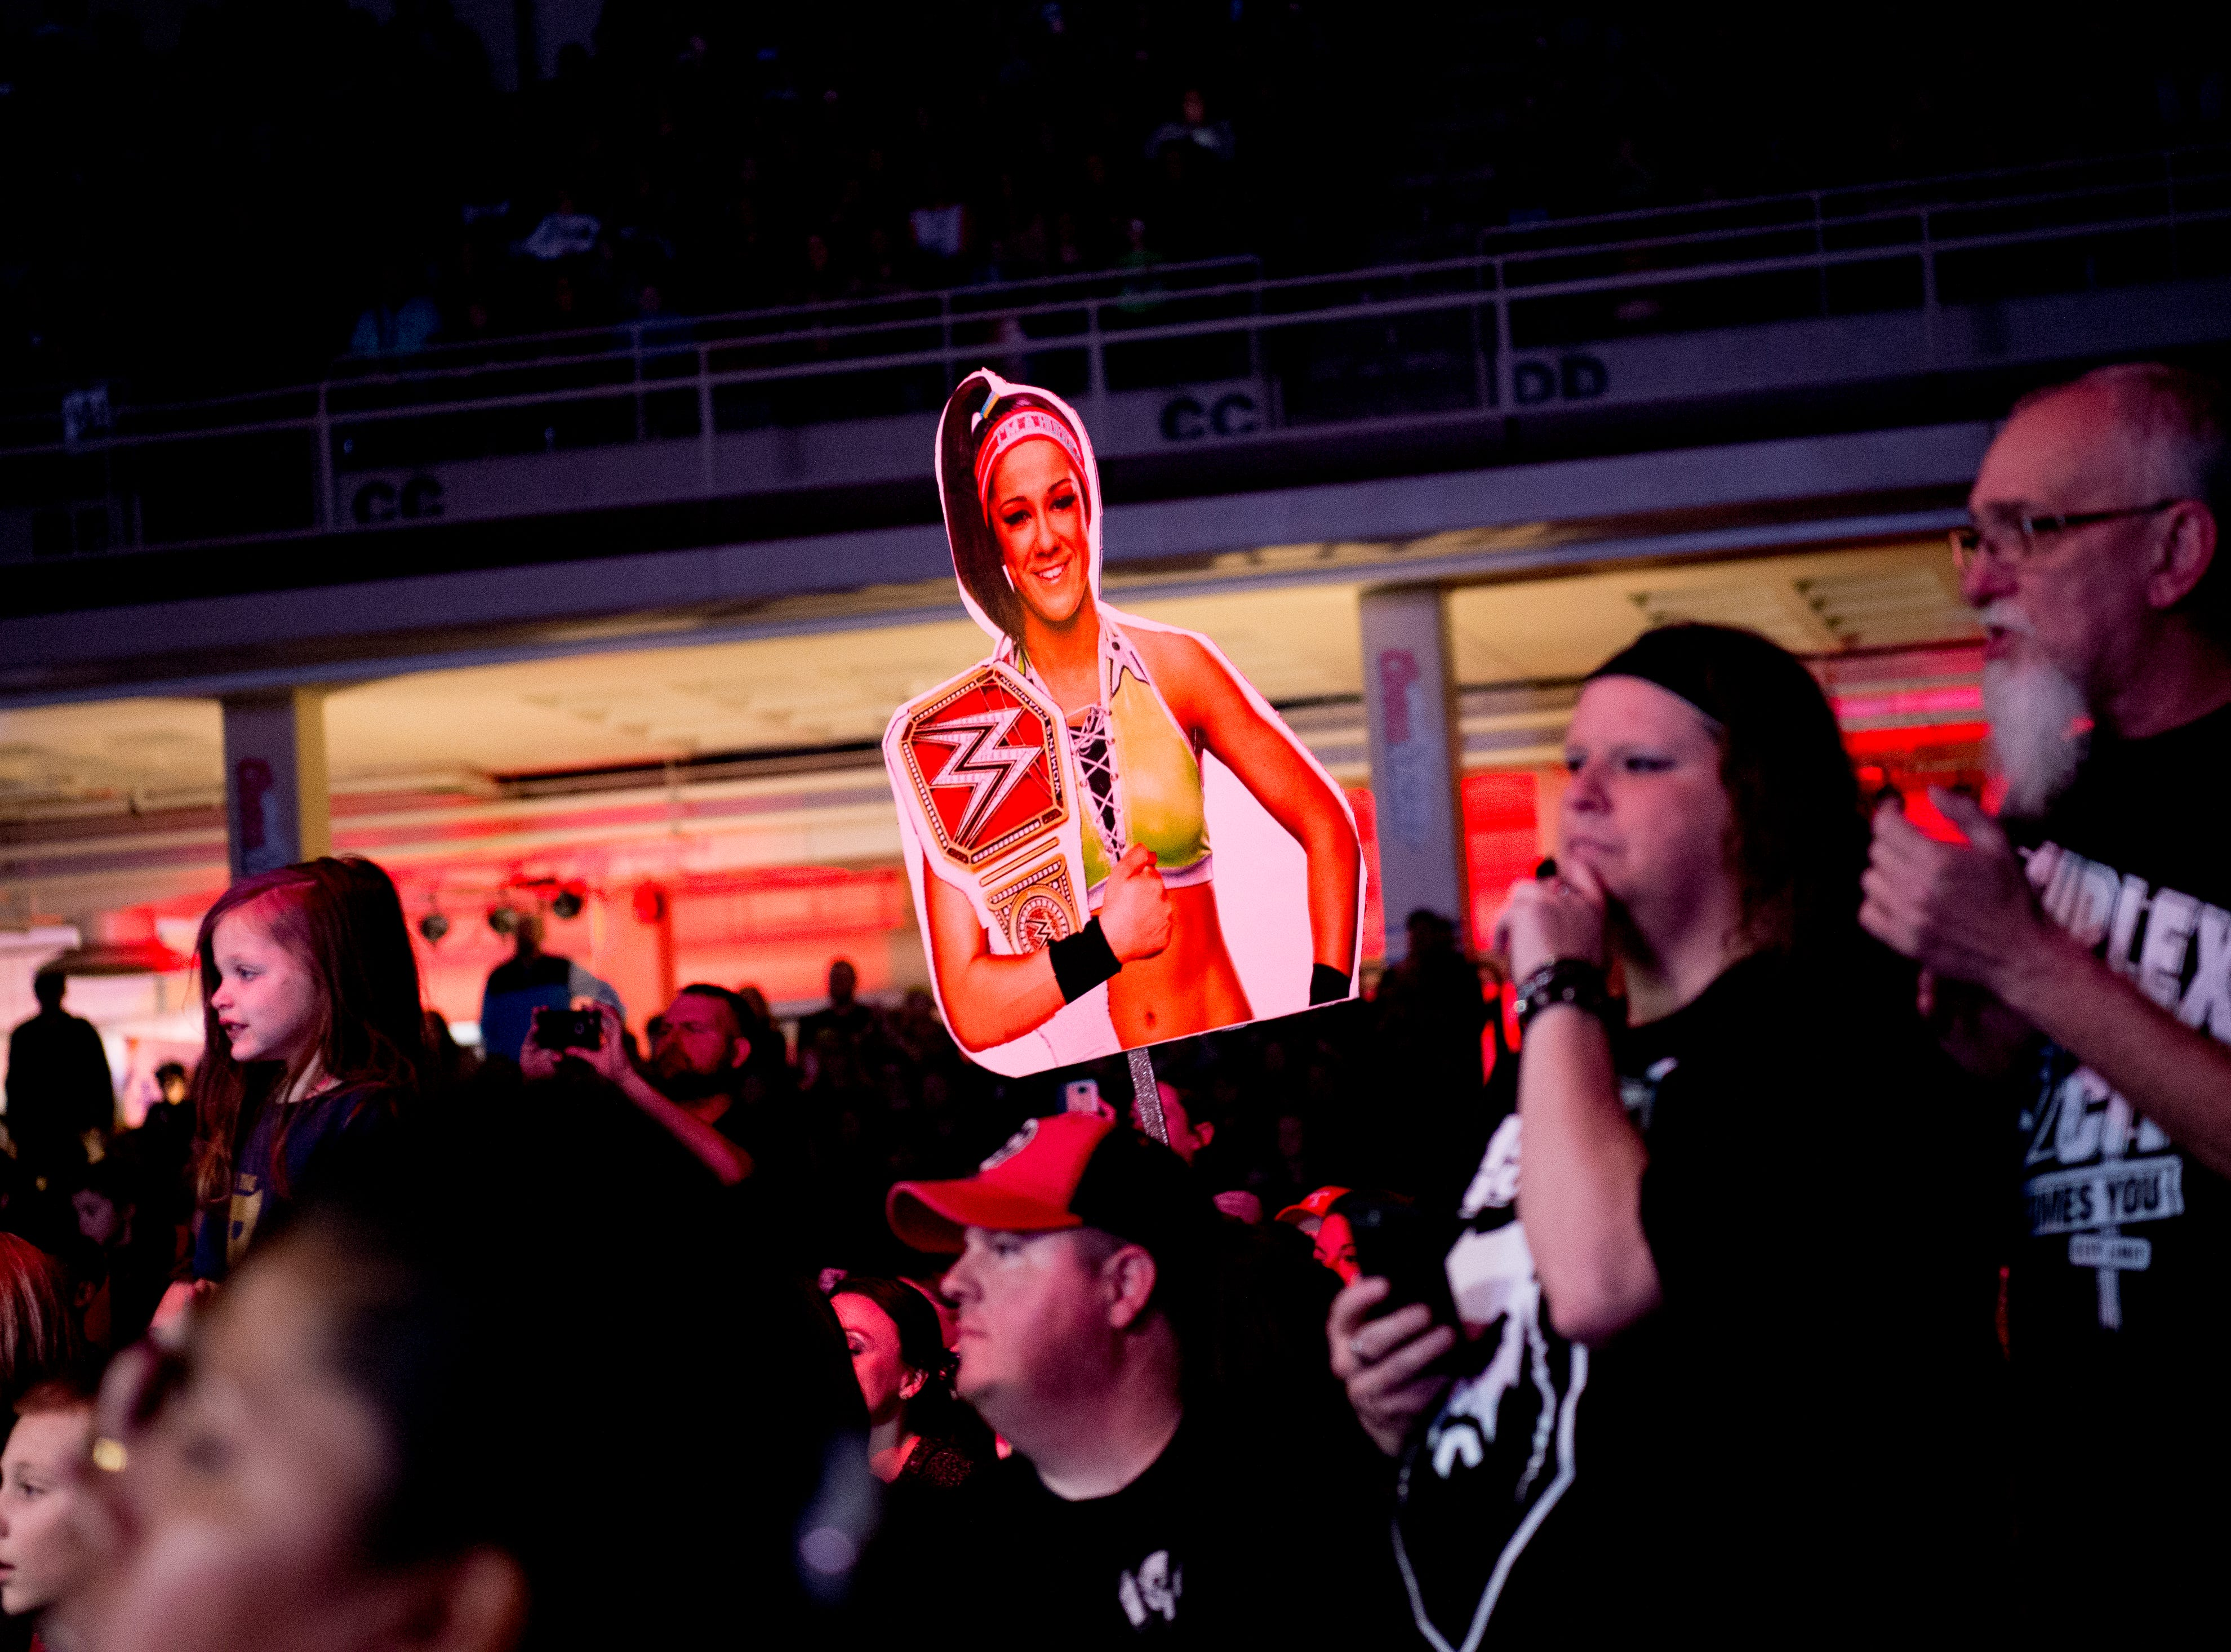 Fans hold poster cutouts of wrestlers during a WWE Live performance at the Knoxville Civic Coliseum in Knoxville, Tennessee on Saturday, January 12, 2019. *KNOXVILLE NEWS SENTINEL USE ONLY*